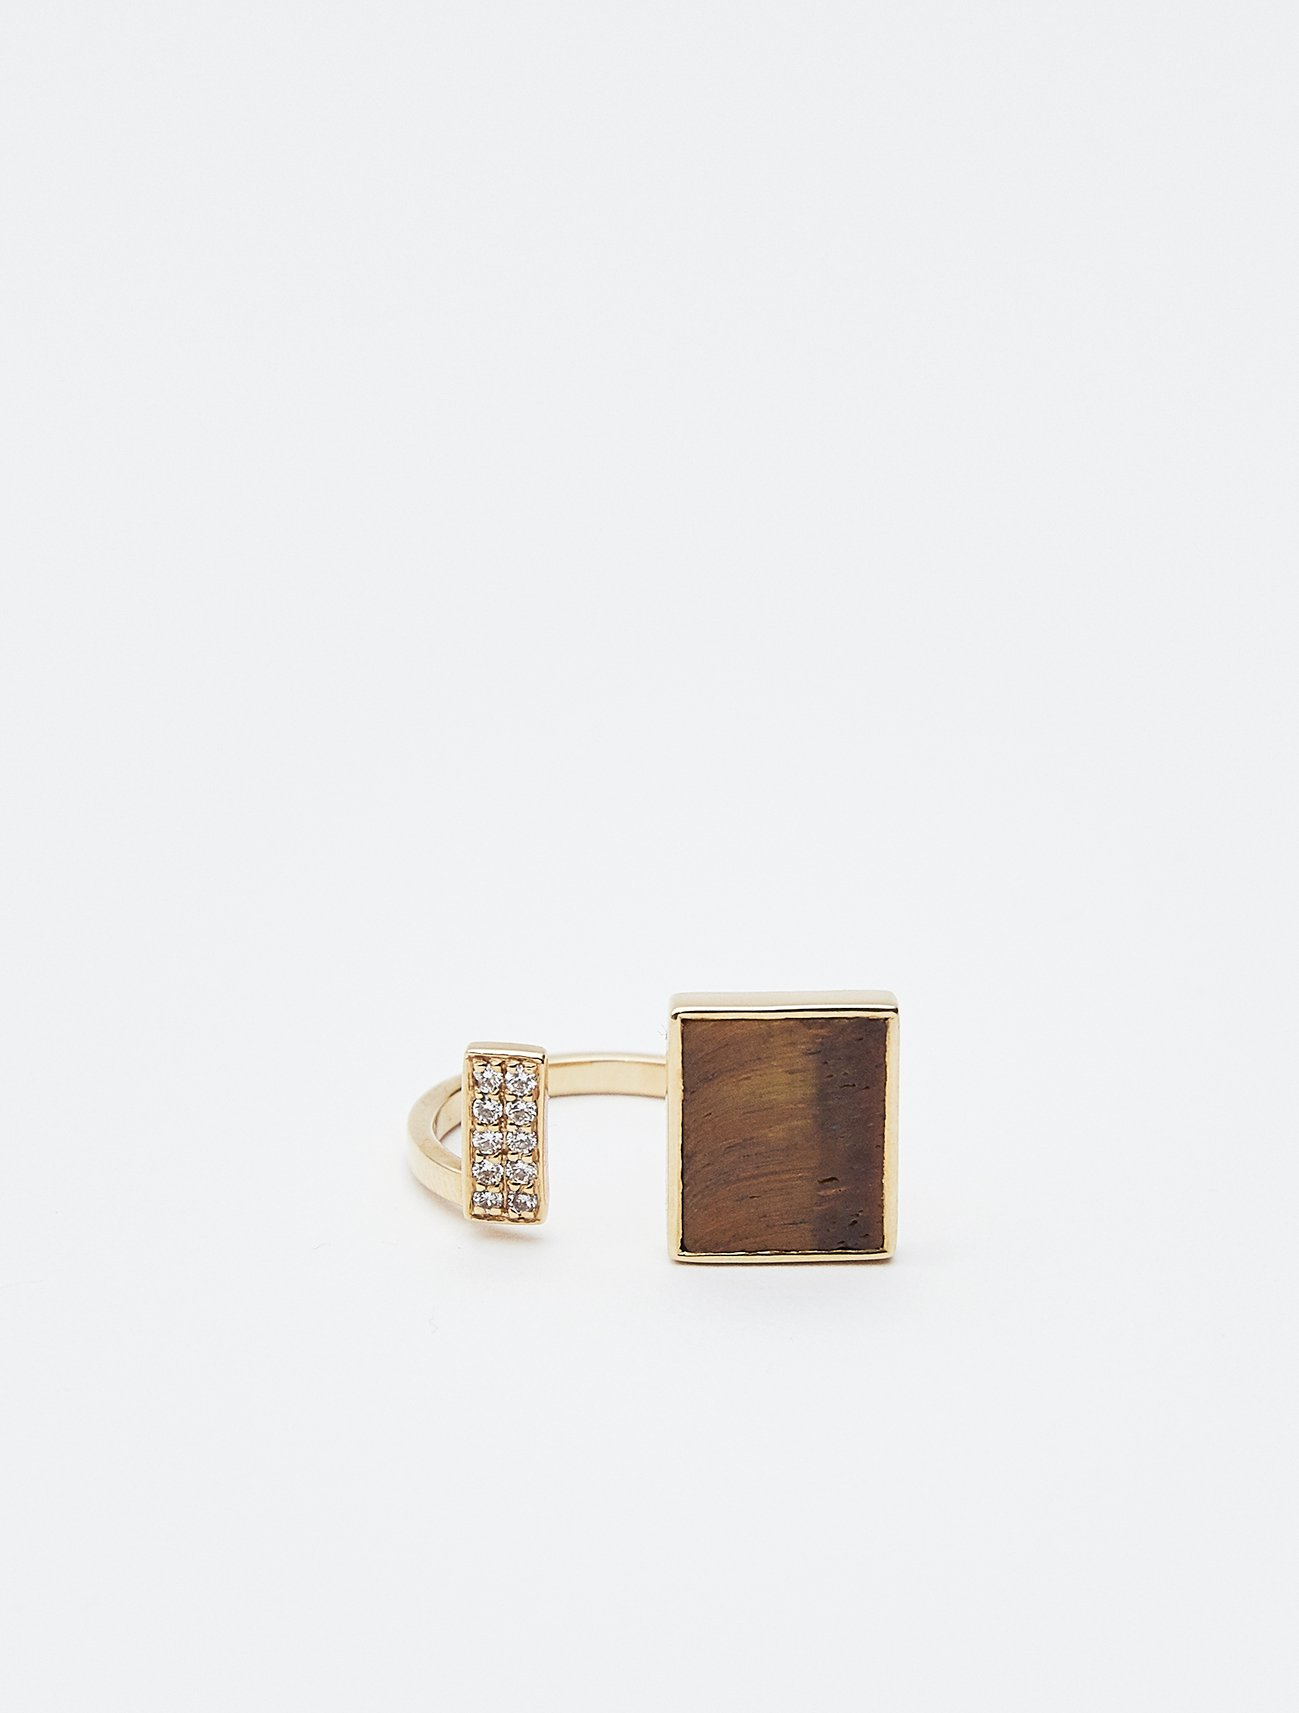 SOPHISTICATED VINTAGE / Open square ring 11号 / Tiger eye, Diamond  在庫商品